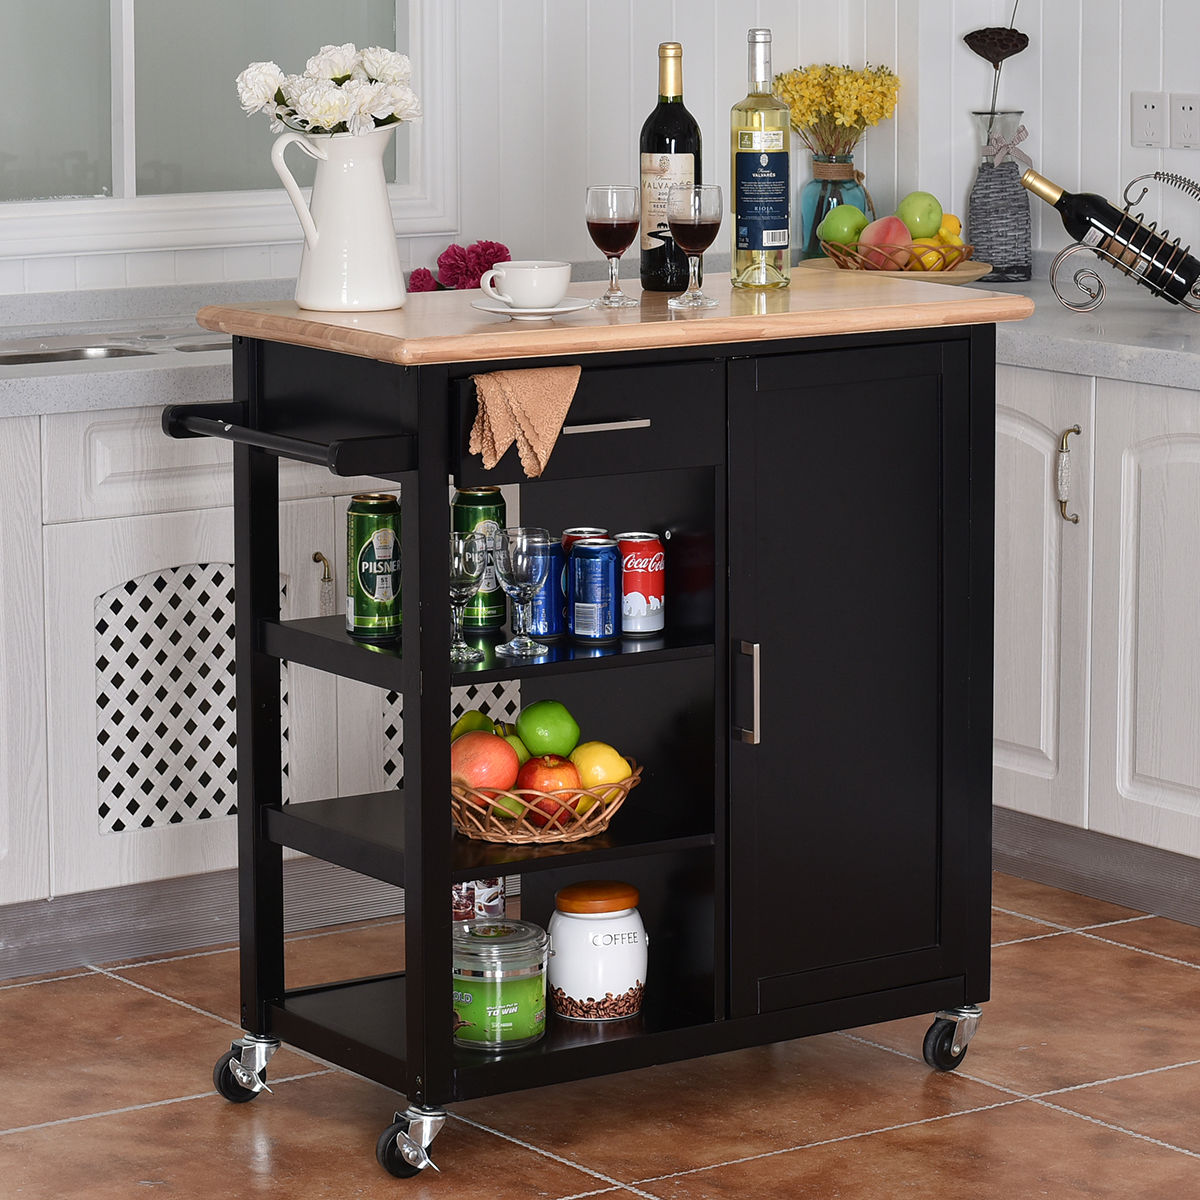 costway 4tier rolling wood kitchen trolley cart island storage cabinet shelf drawer